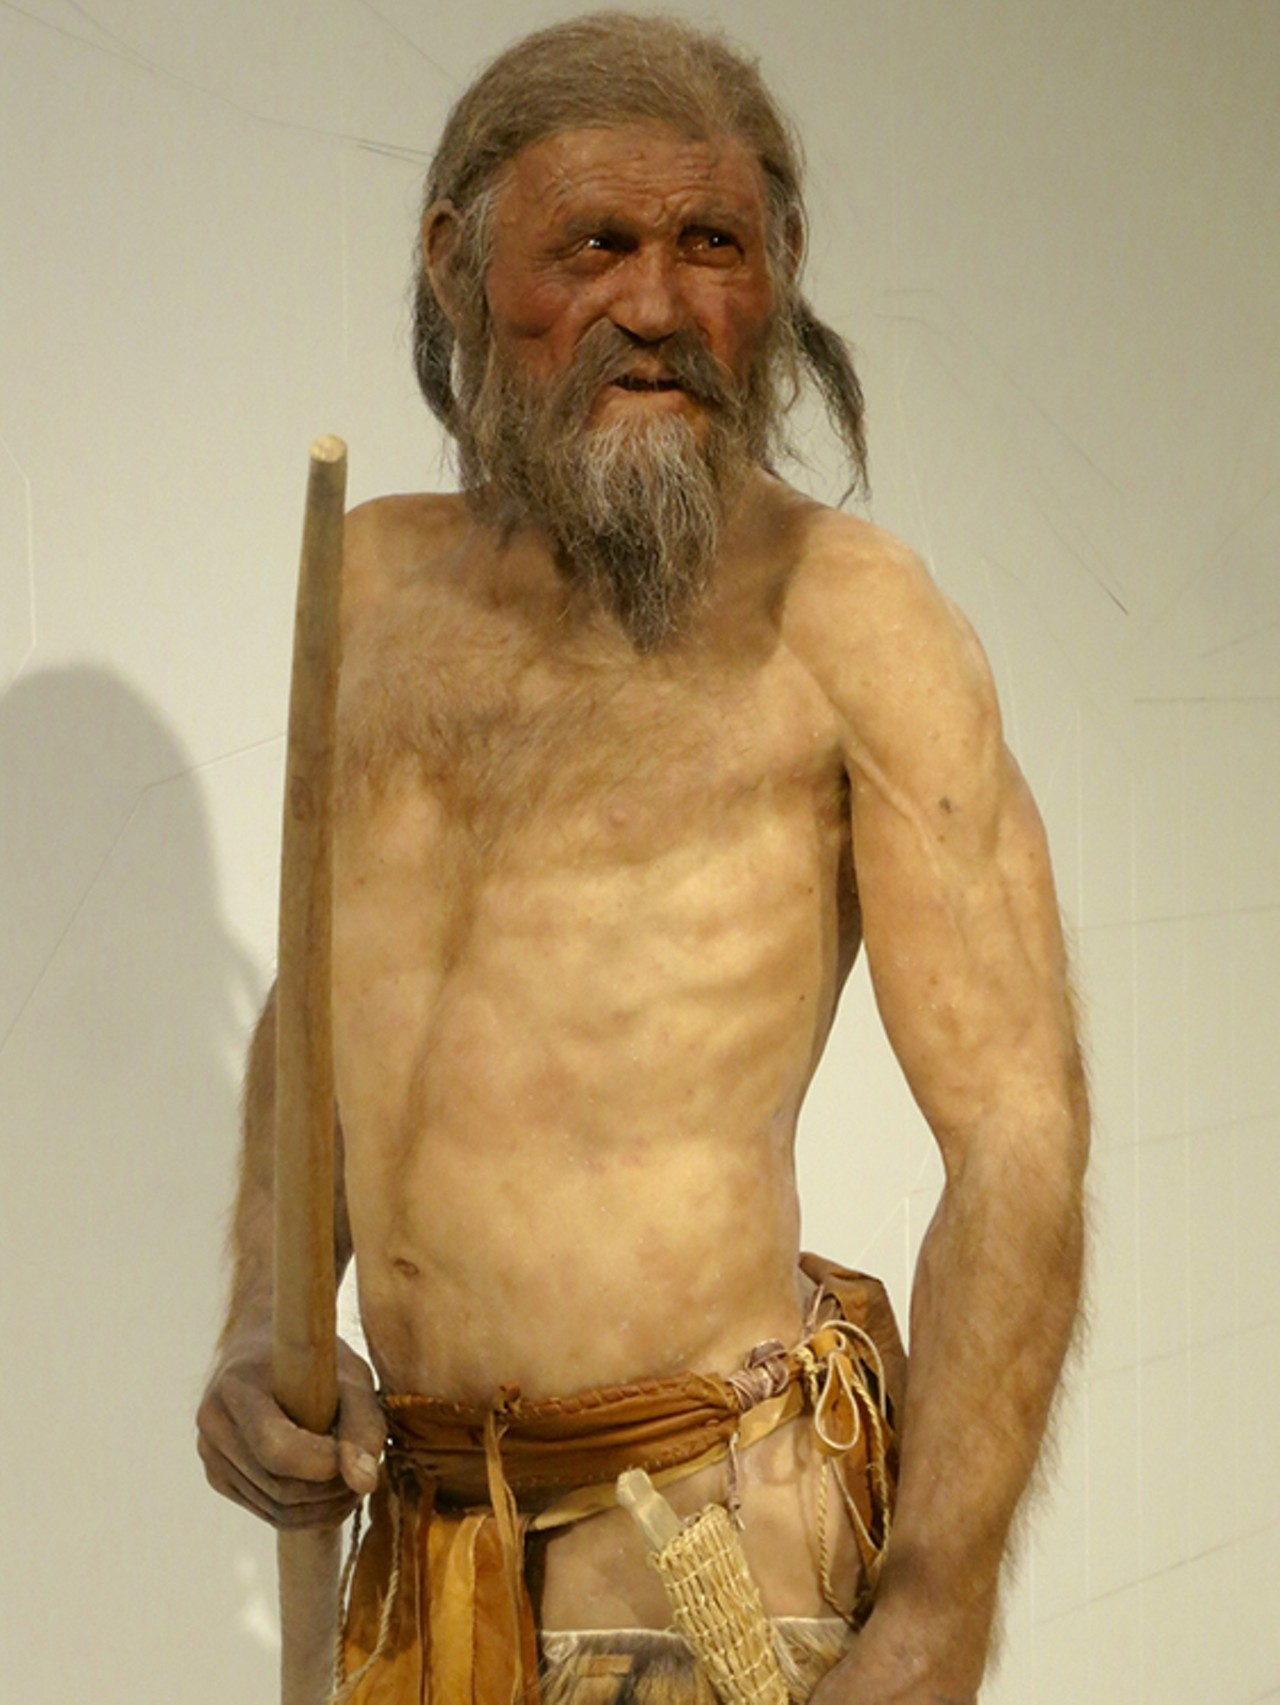 tzi the iceman information and Assignment: reading informational text – otzi the iceman otzi the iceman (discovered in the alps, believed to have died about 5,300 years ago).